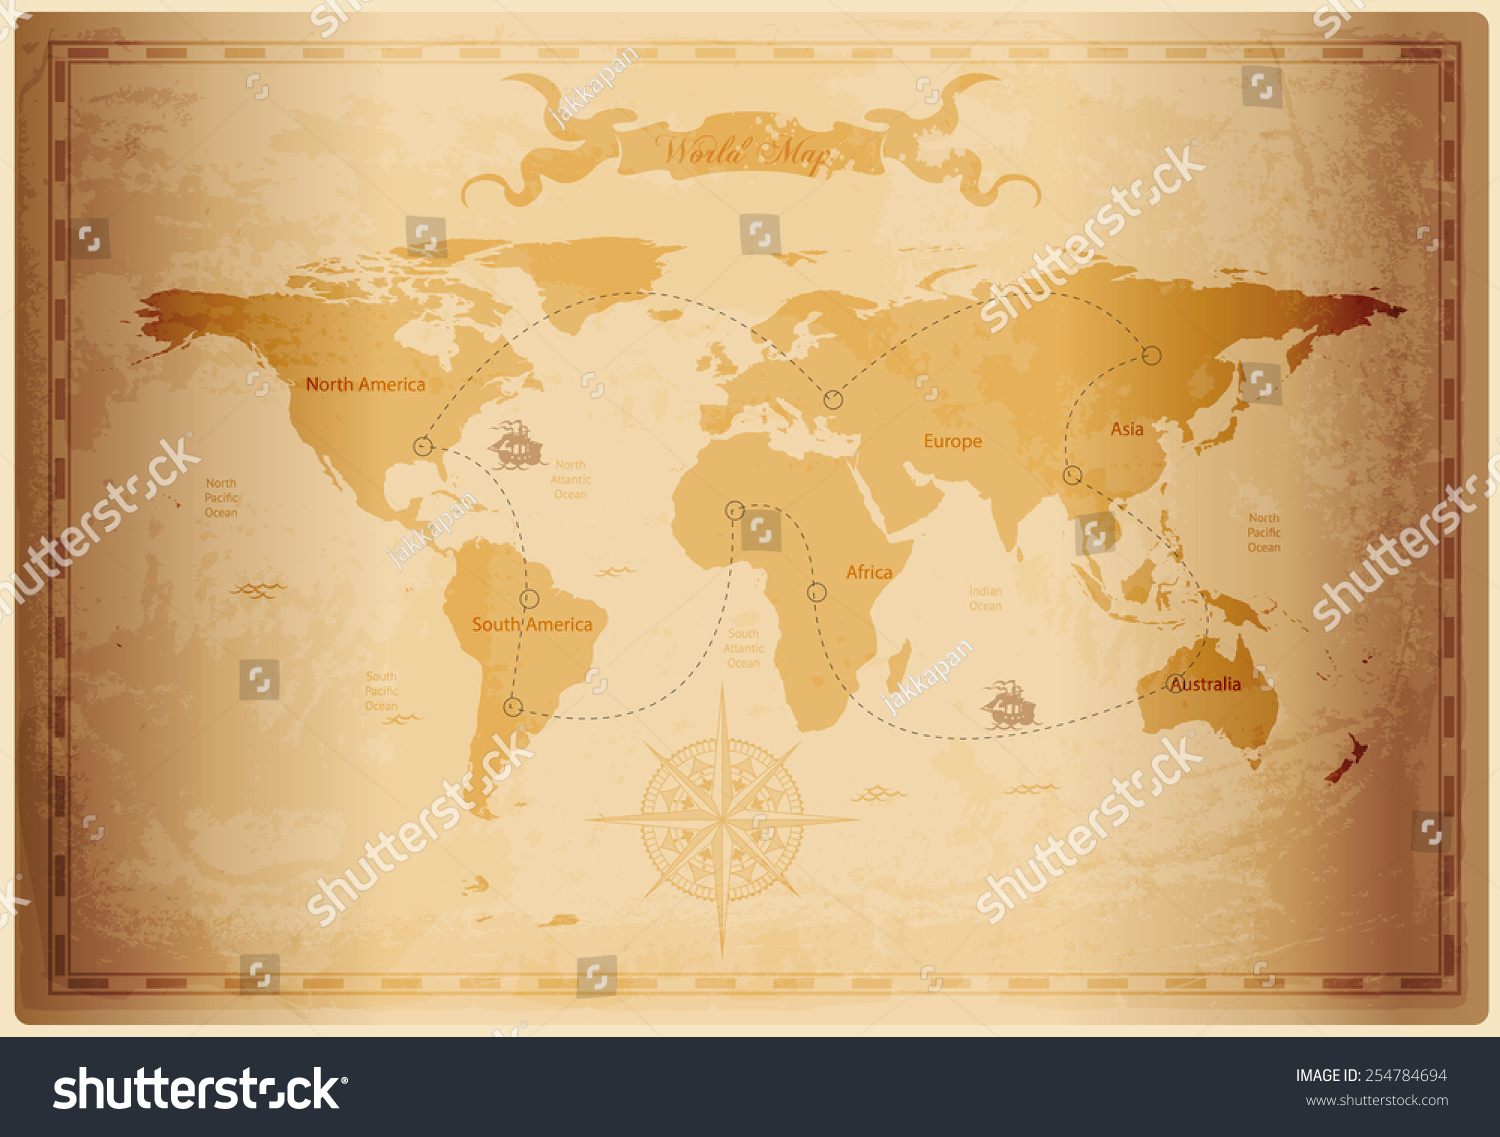 Old world map vintage paper texture stock vector royalty free old world map with vintage paper texture vector format gumiabroncs Choice Image